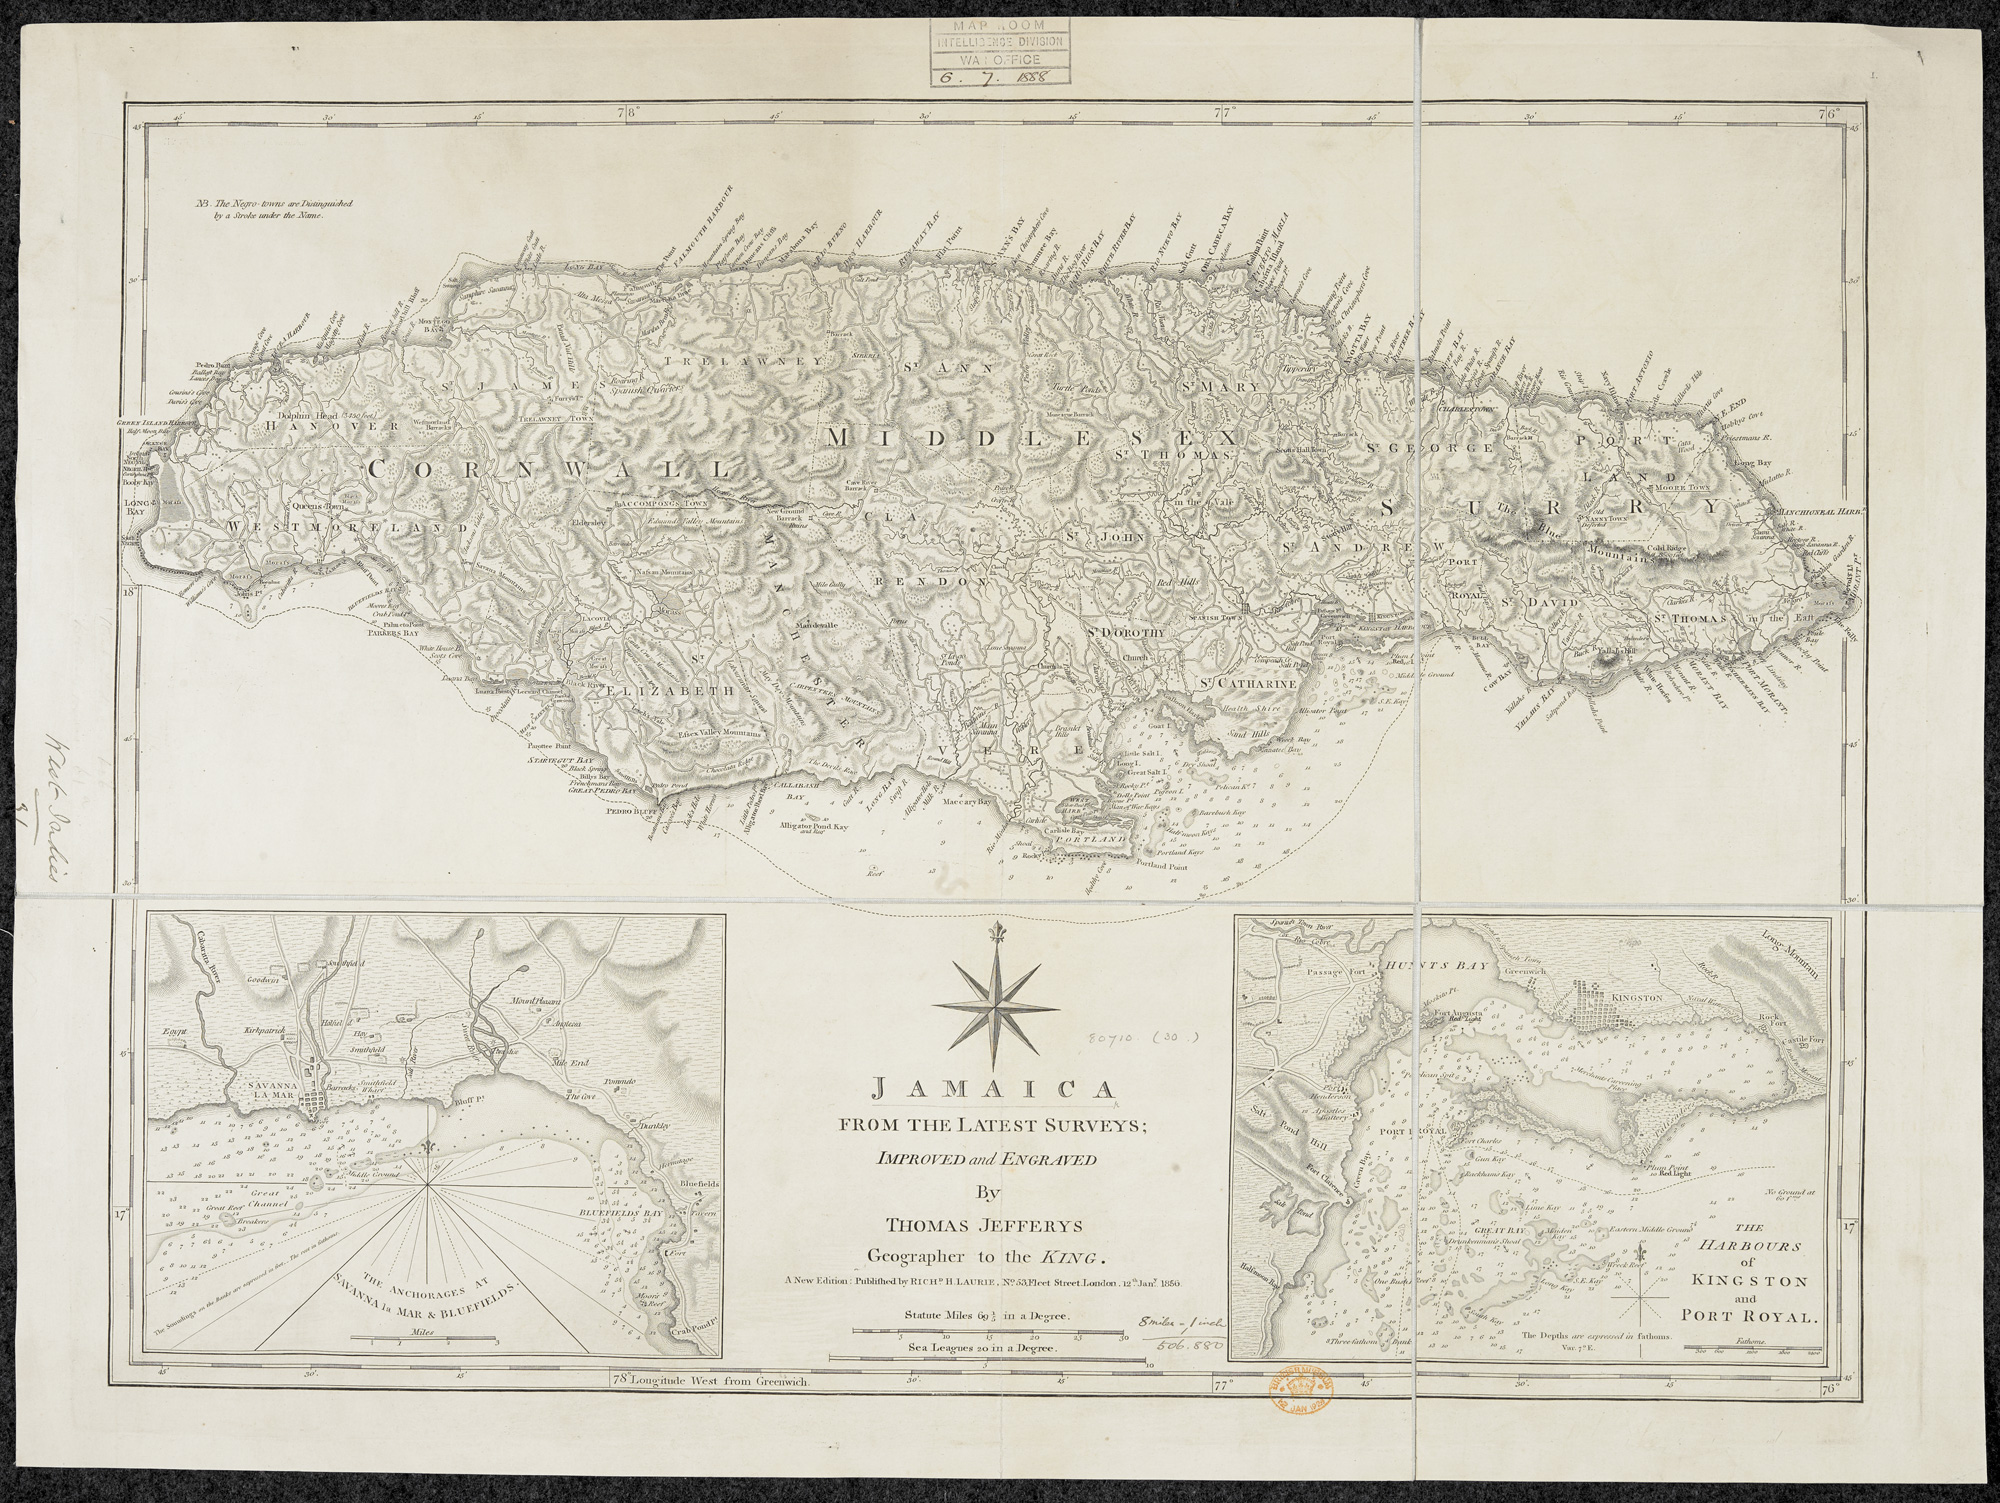 Jamaica from the latest surveys - The British Library